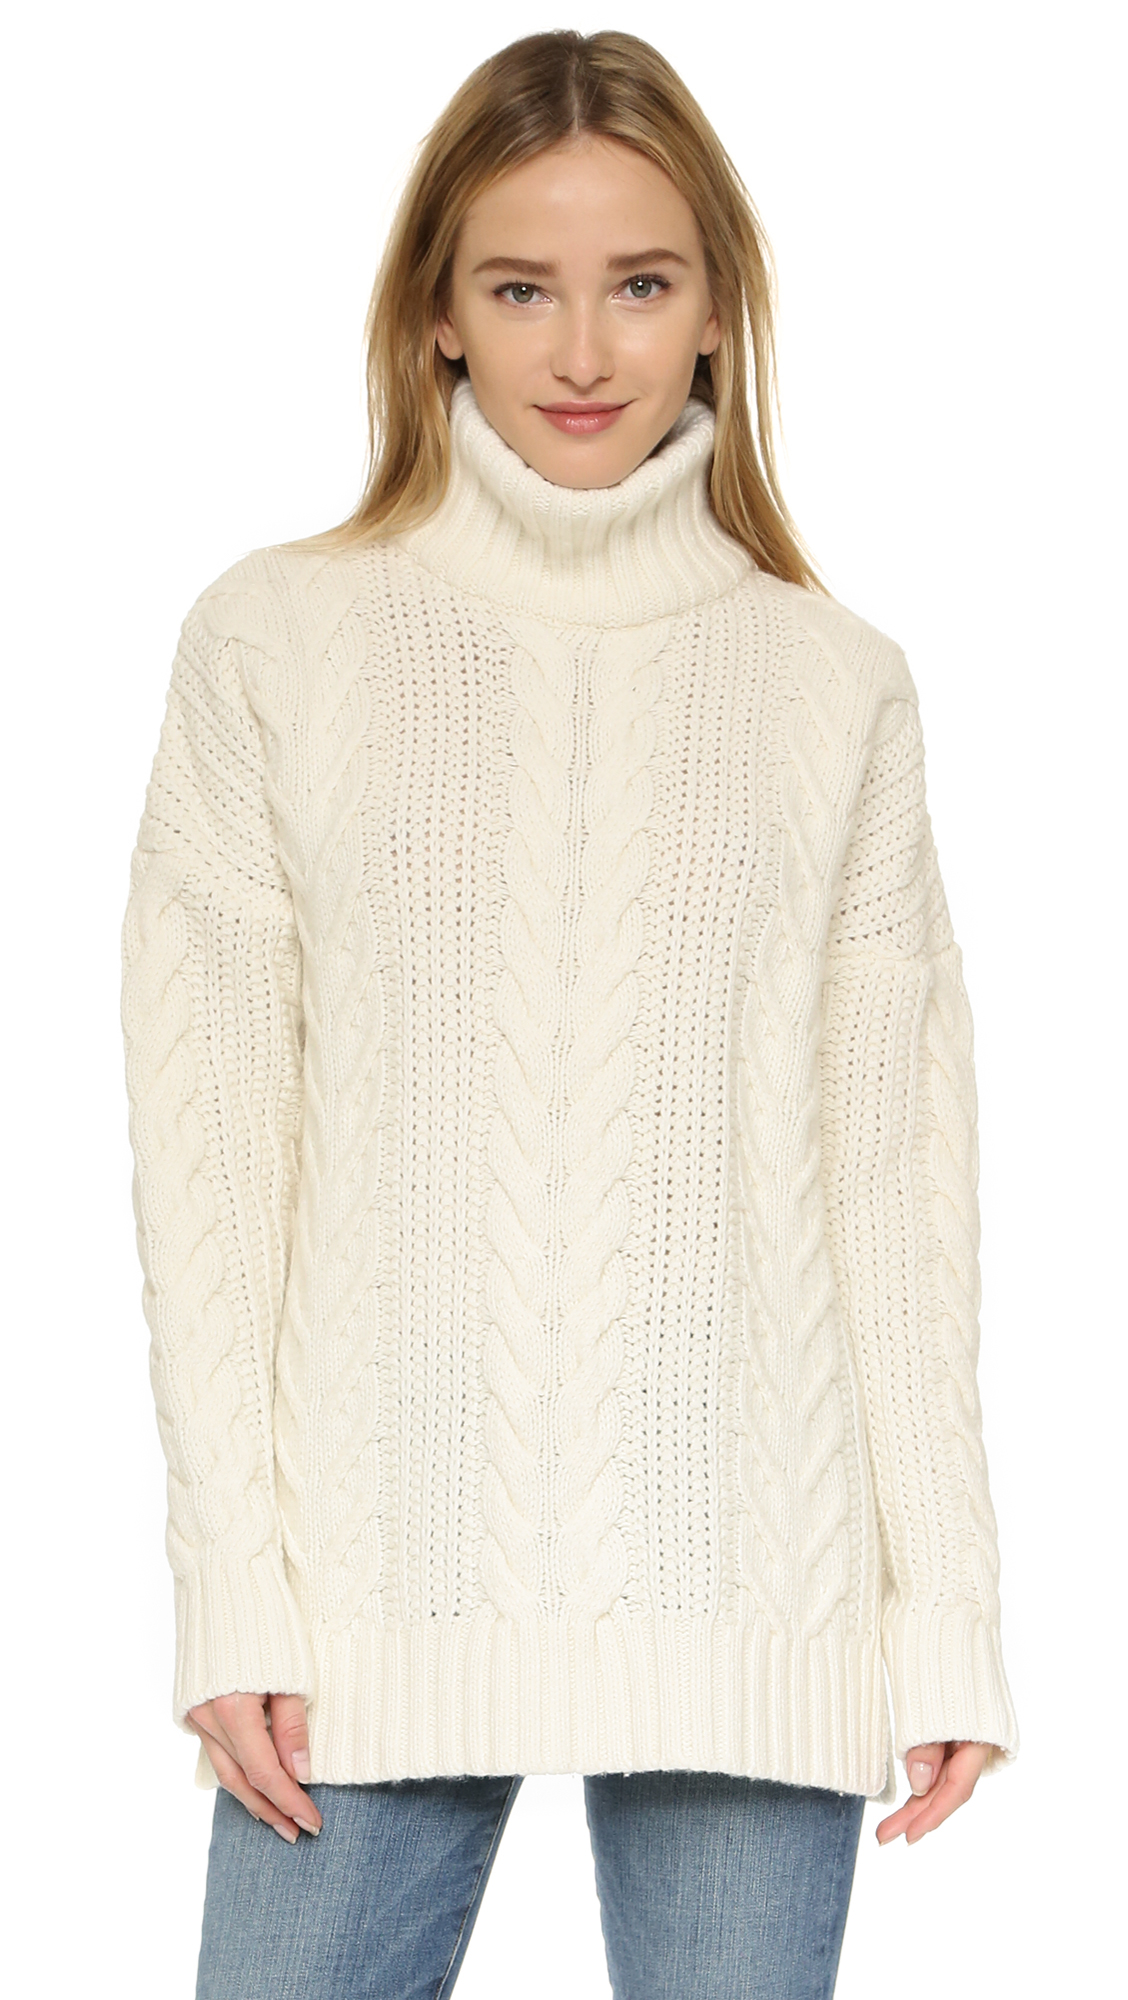 Anine bing White Turtleneck Sweater - White in White | Lyst